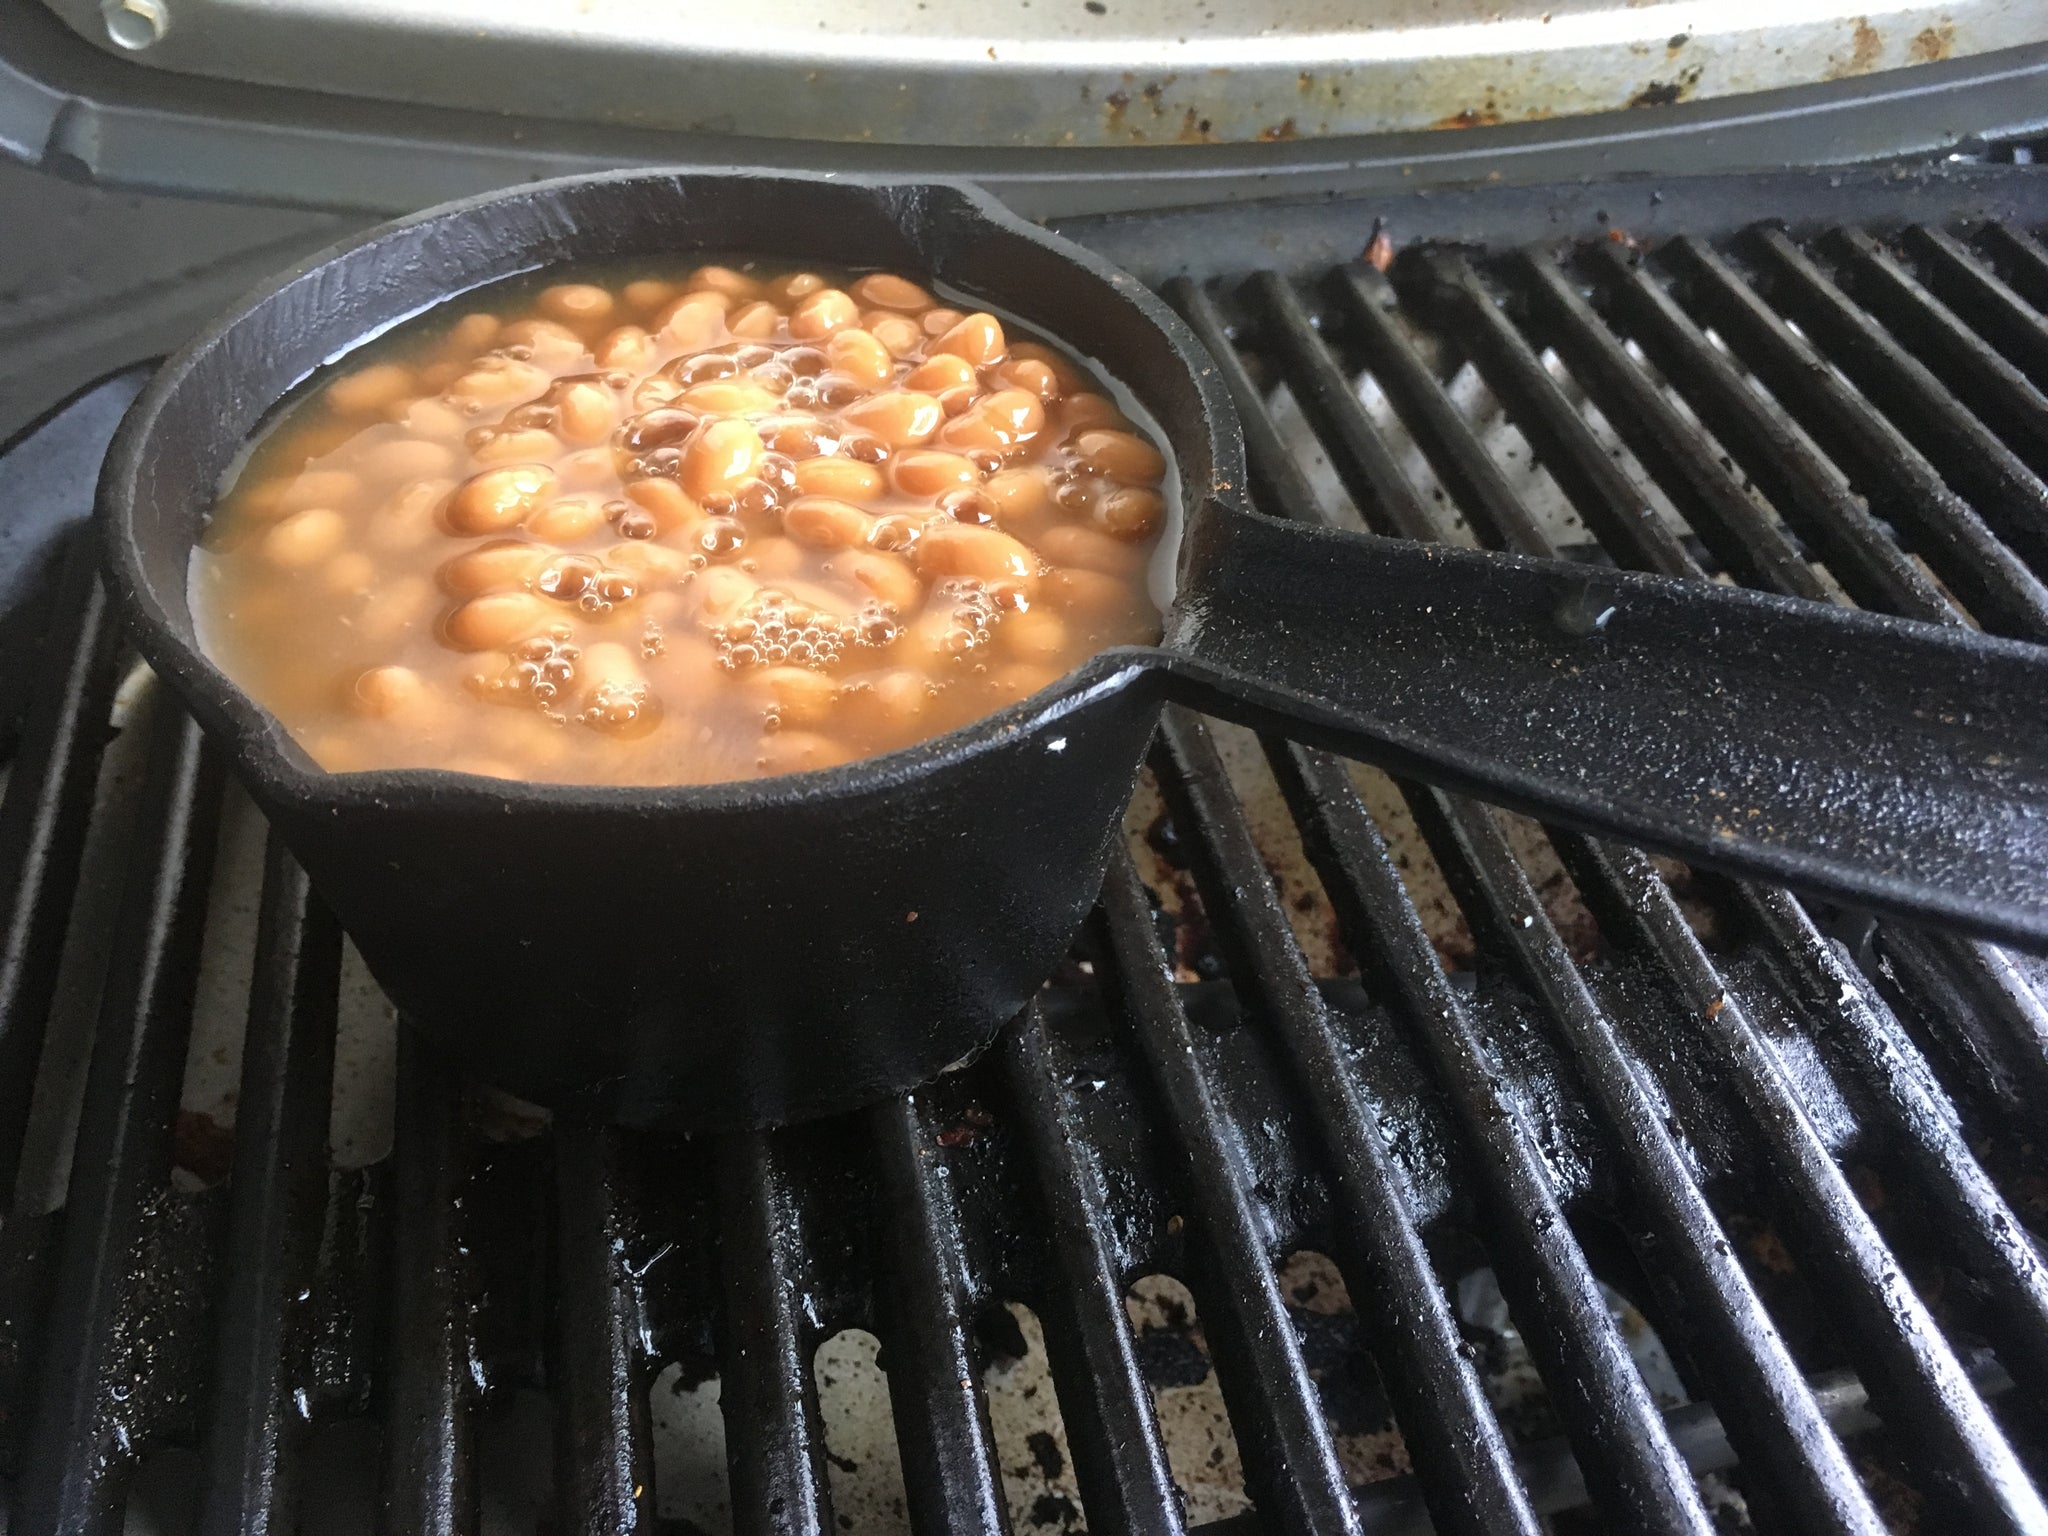 Maple Baked Beans in a Cast Iron Pot on Barbecue